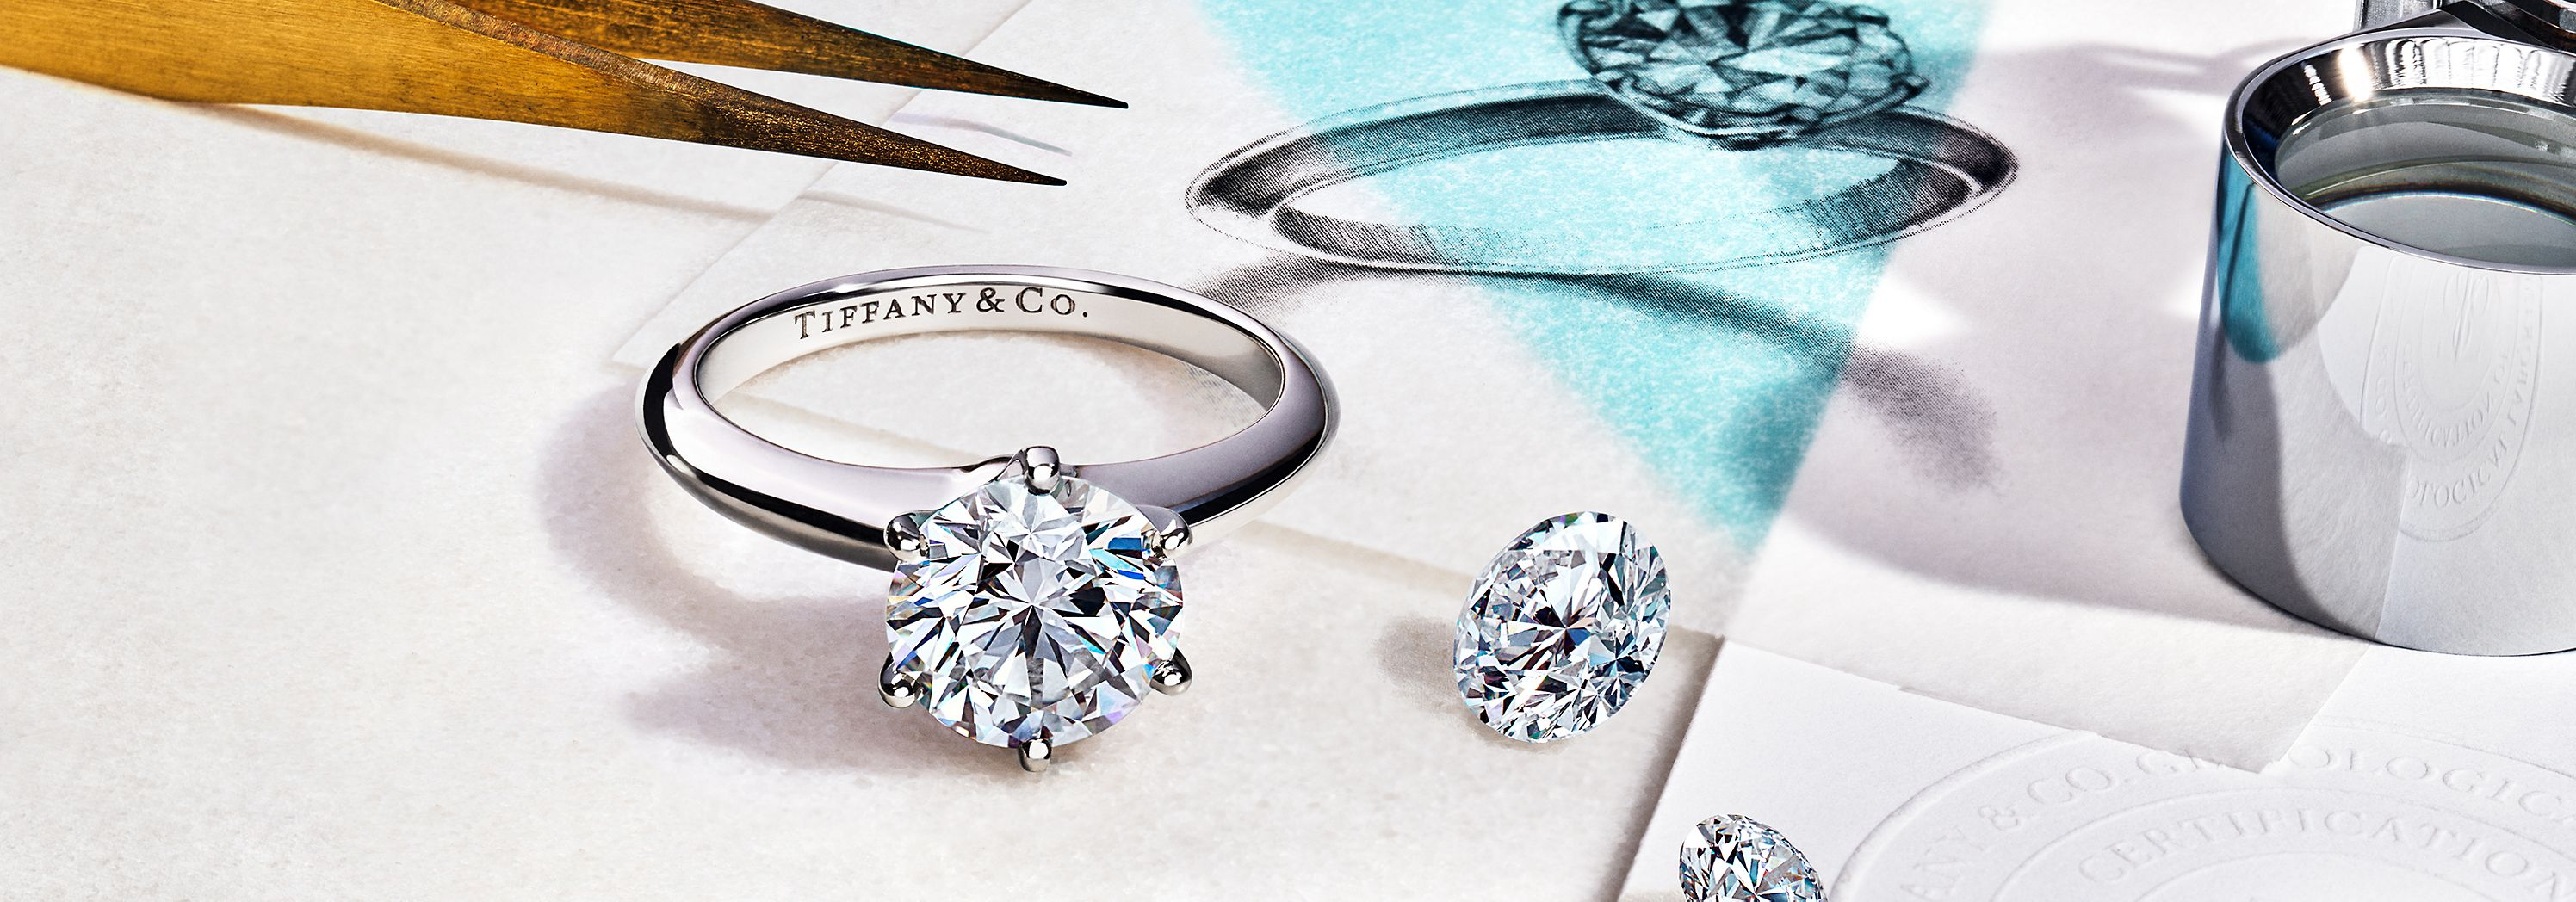 Anello di fidanzamento Tiffany® Setting in platino